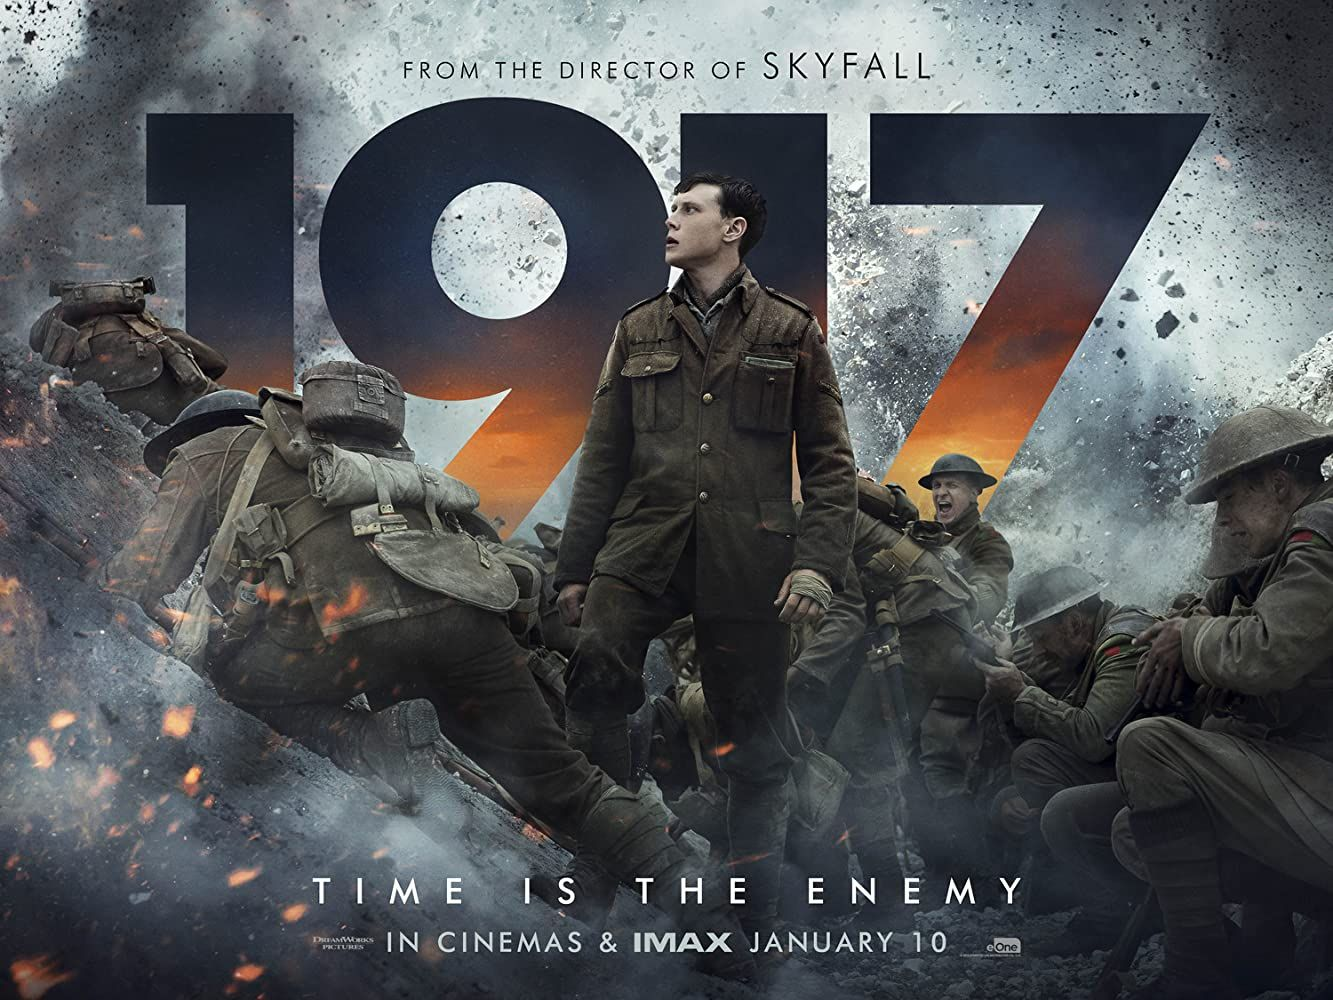 1917 2019 April 6th 1917 As A Regiment Assembles To Wage War Deep In Enemy Territory Two Soldiers Are Assigned New Movie Posters Movie Posters Sam Mendes